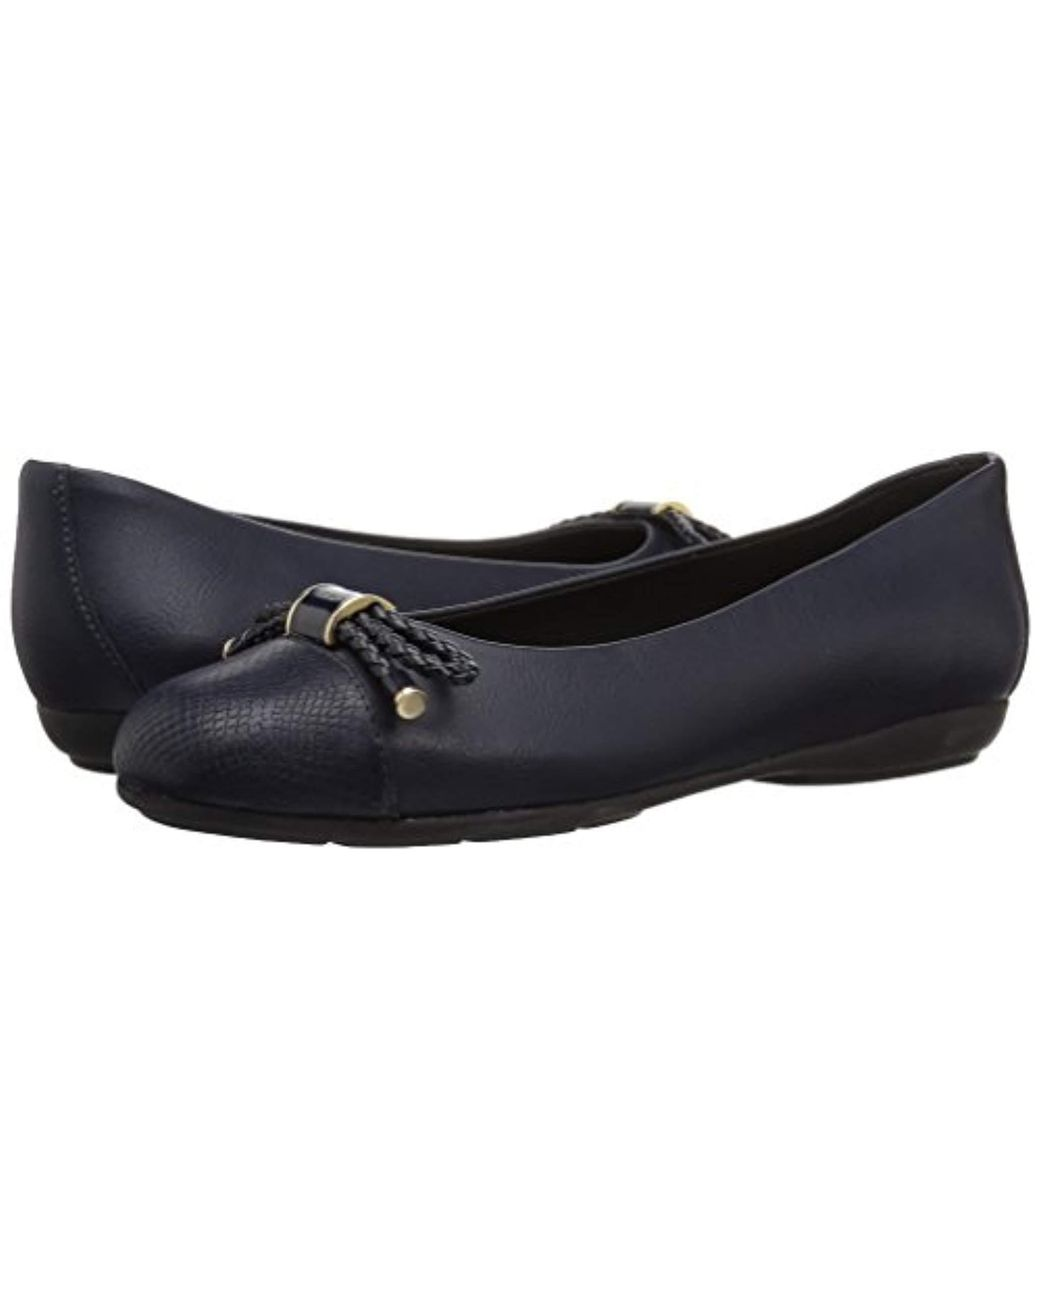 e30c41fdd3 Geox Annytah 6 Ballet Round Toe Flats With Bow-arch Support And Cushioning  in Blue - Lyst